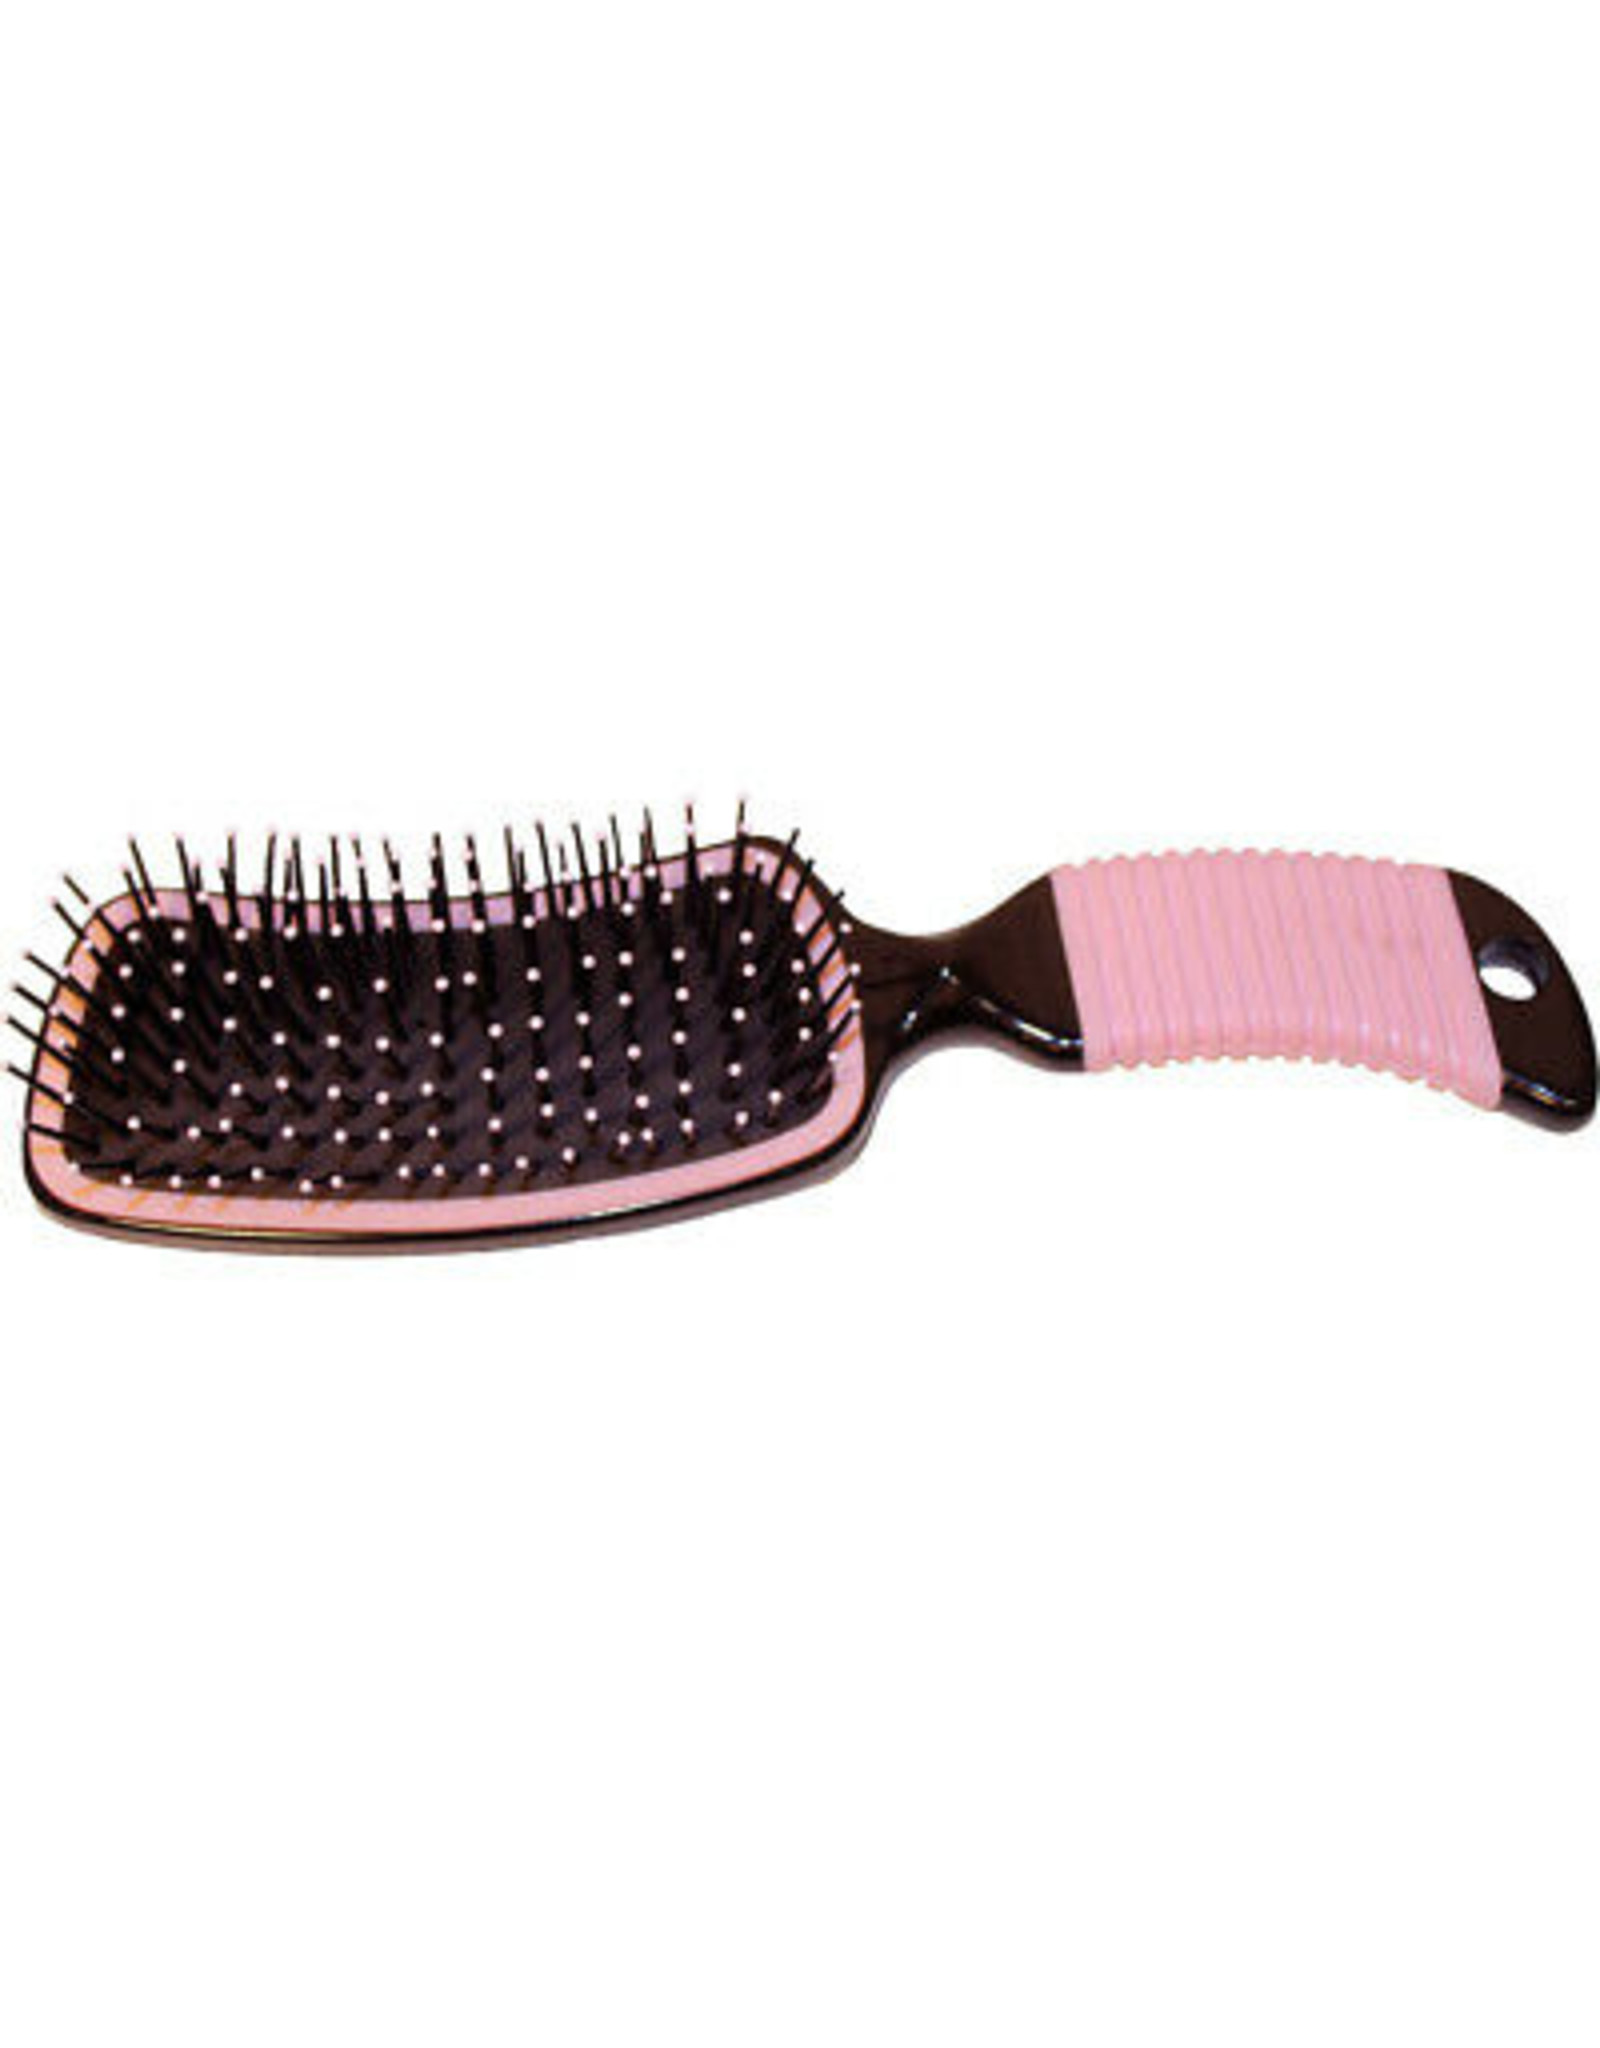 Partrade Curved Mane Brush